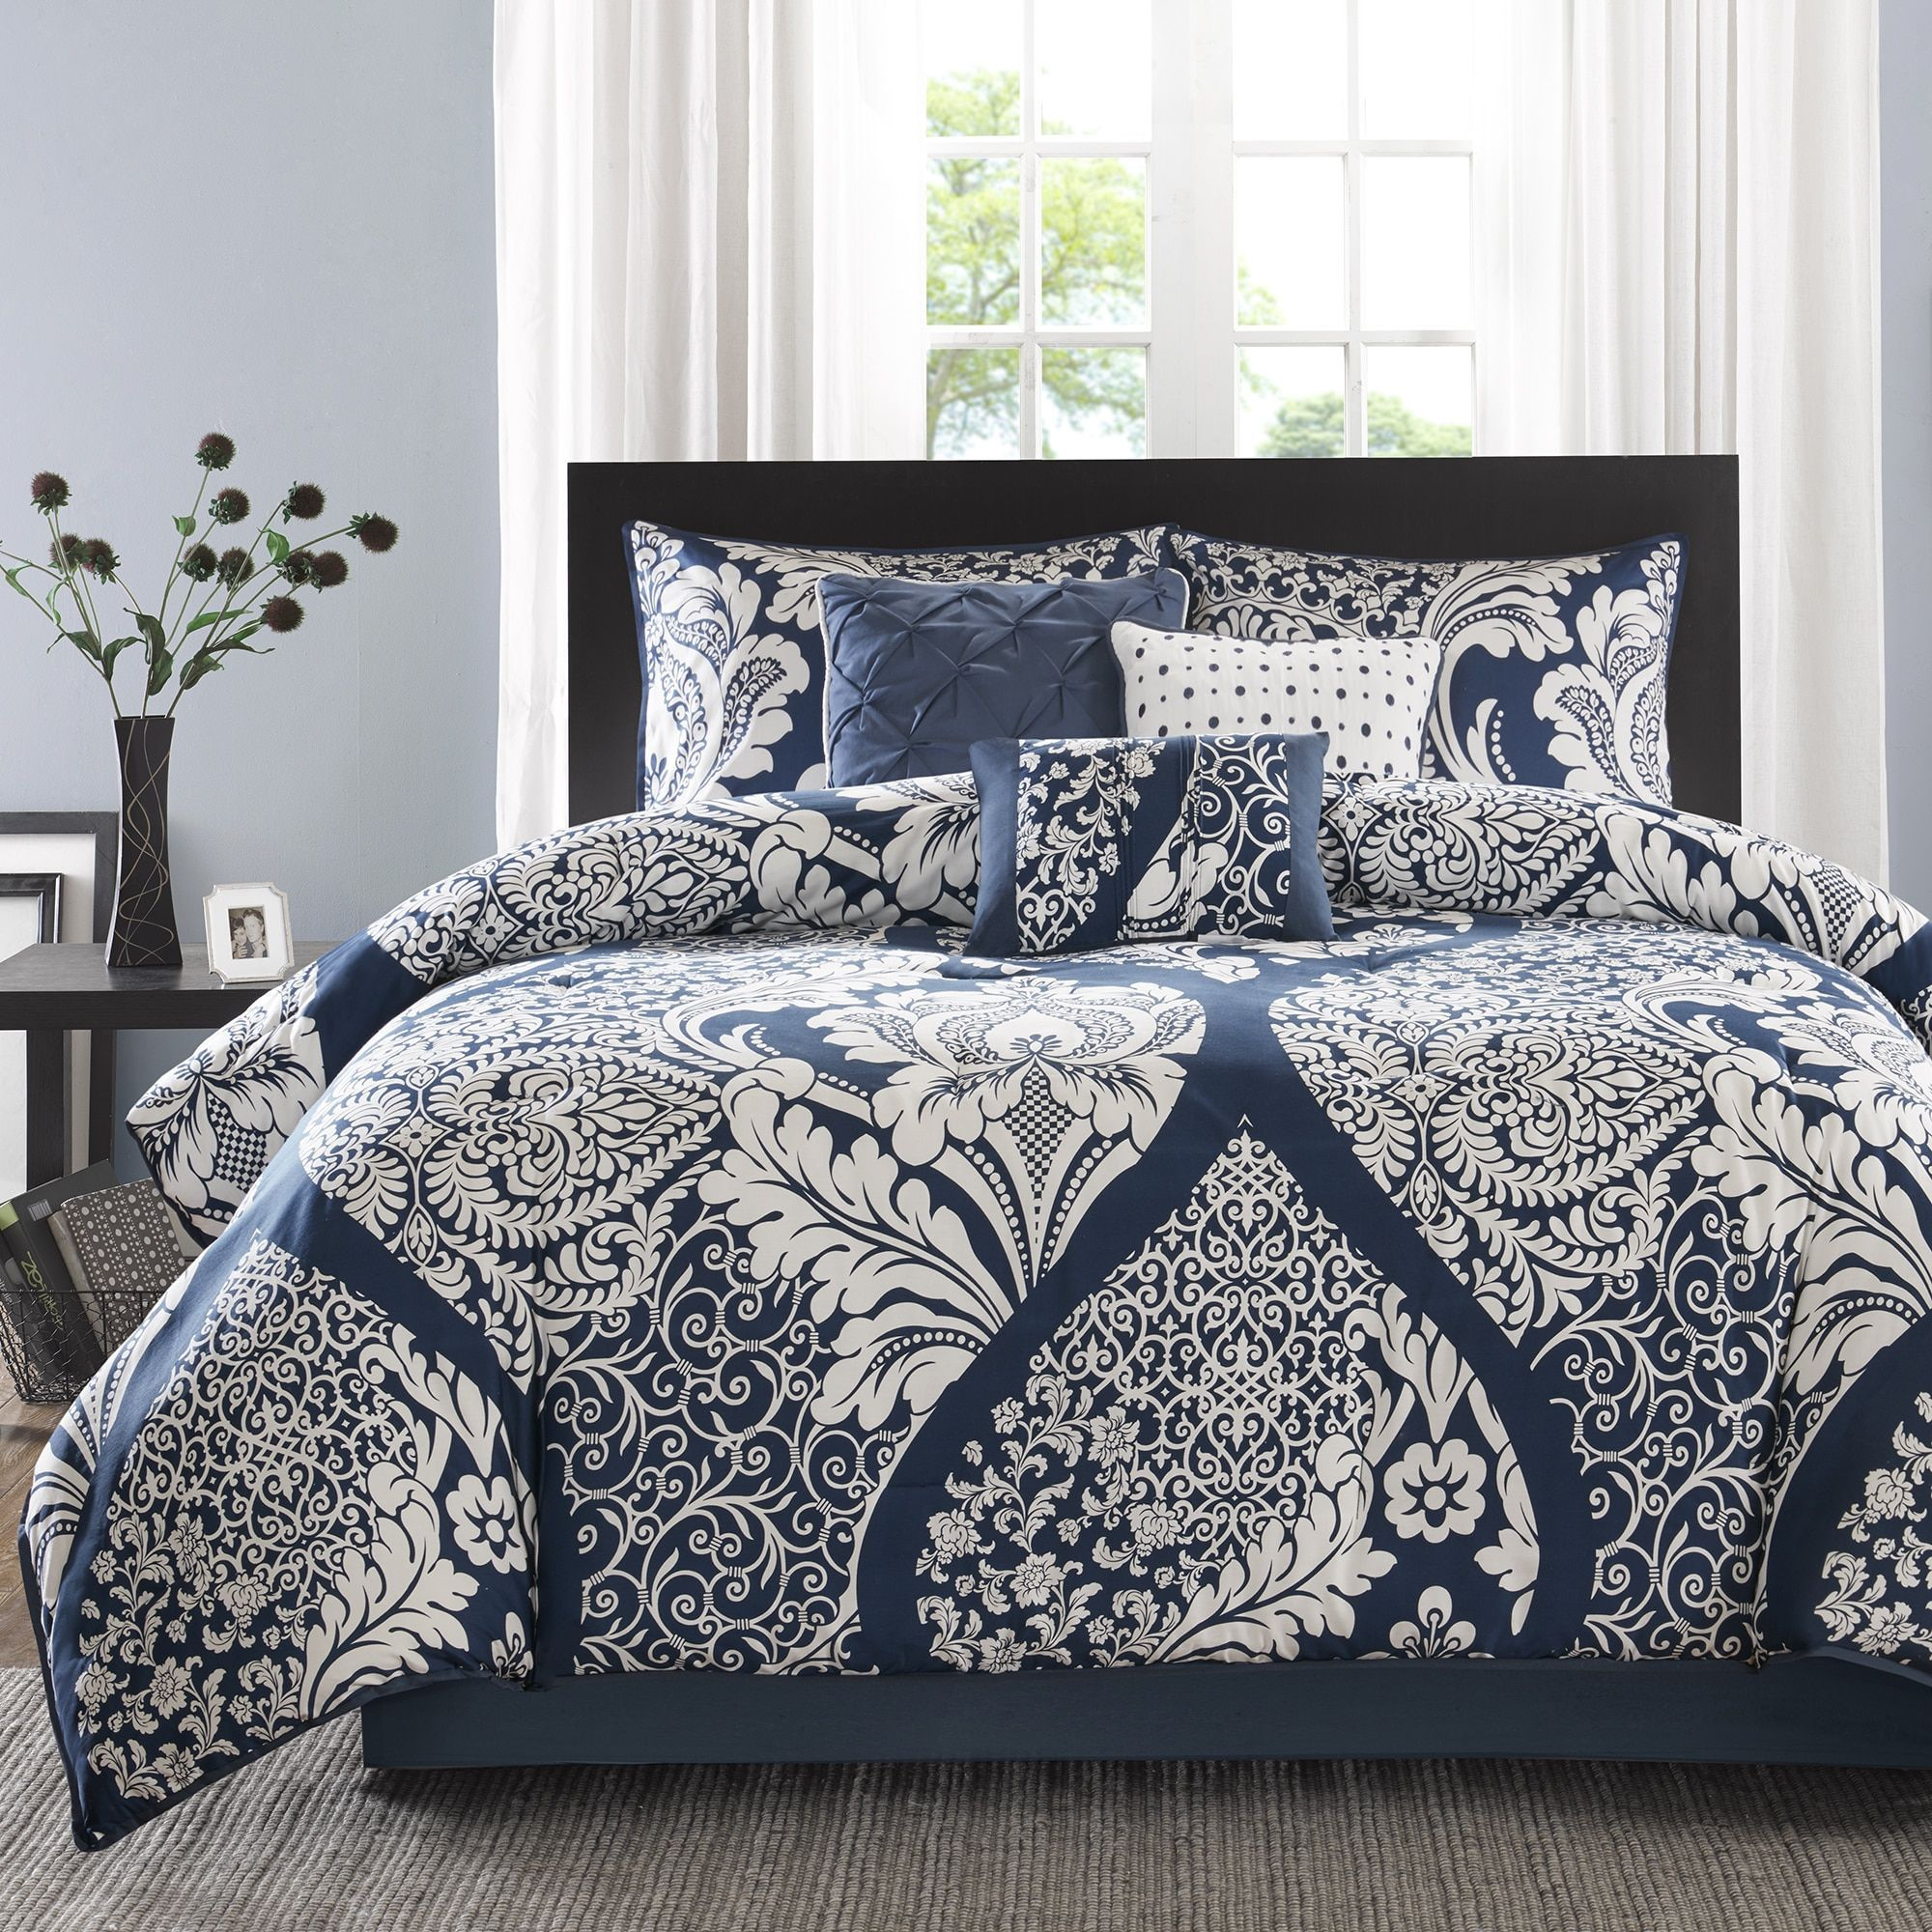 Piumoni Camera Da Letto madison park marcella indigo cotton printed 7 piece